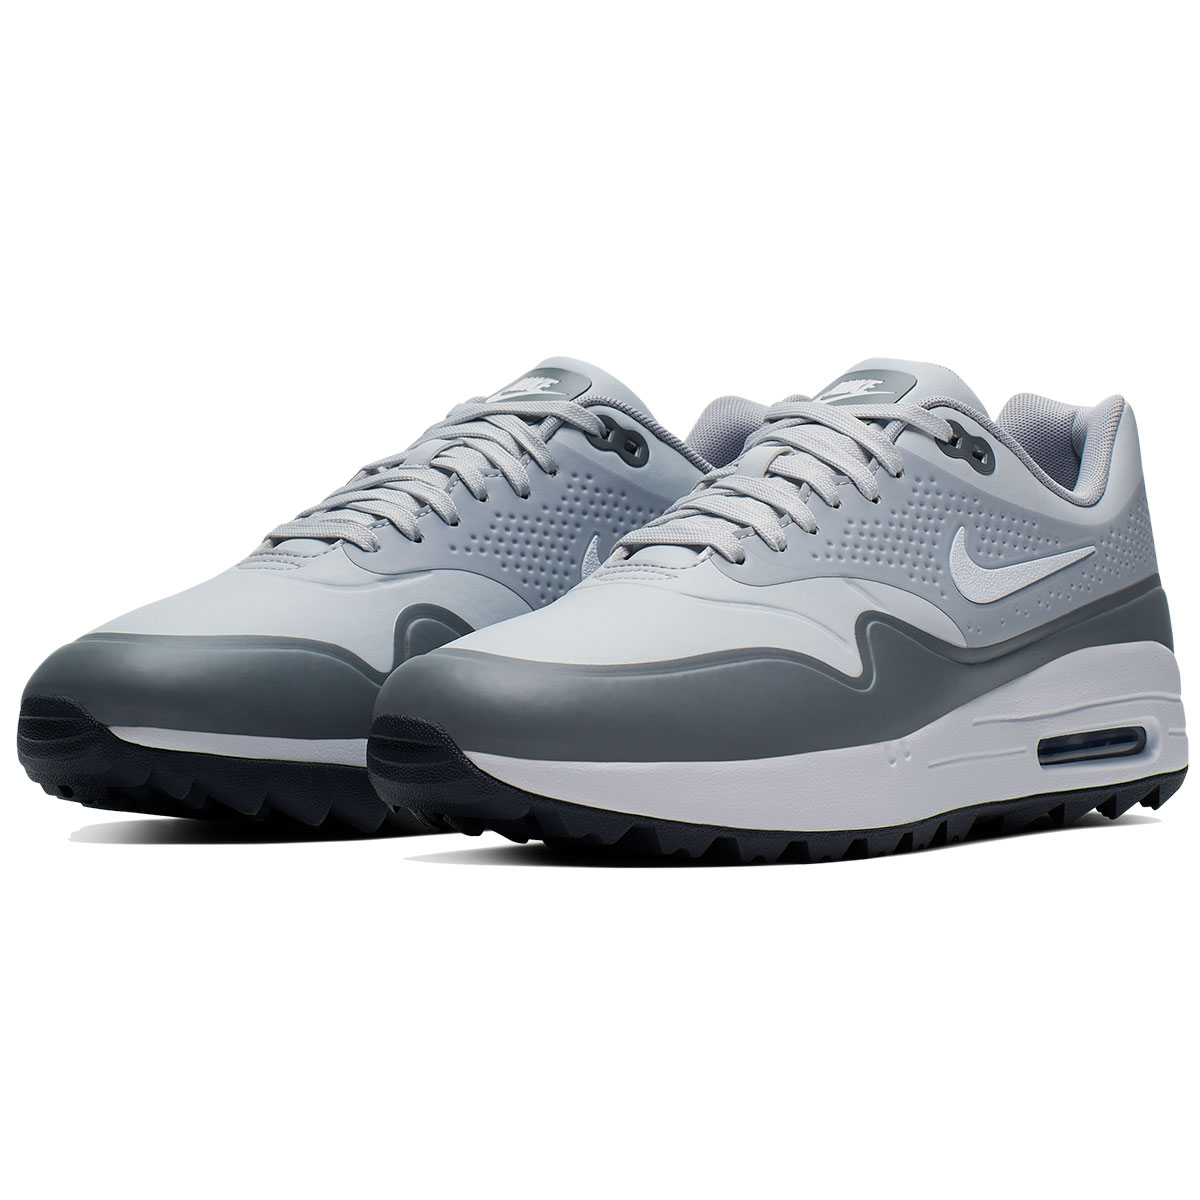 Nike Air Max 1G Shoes from american golf